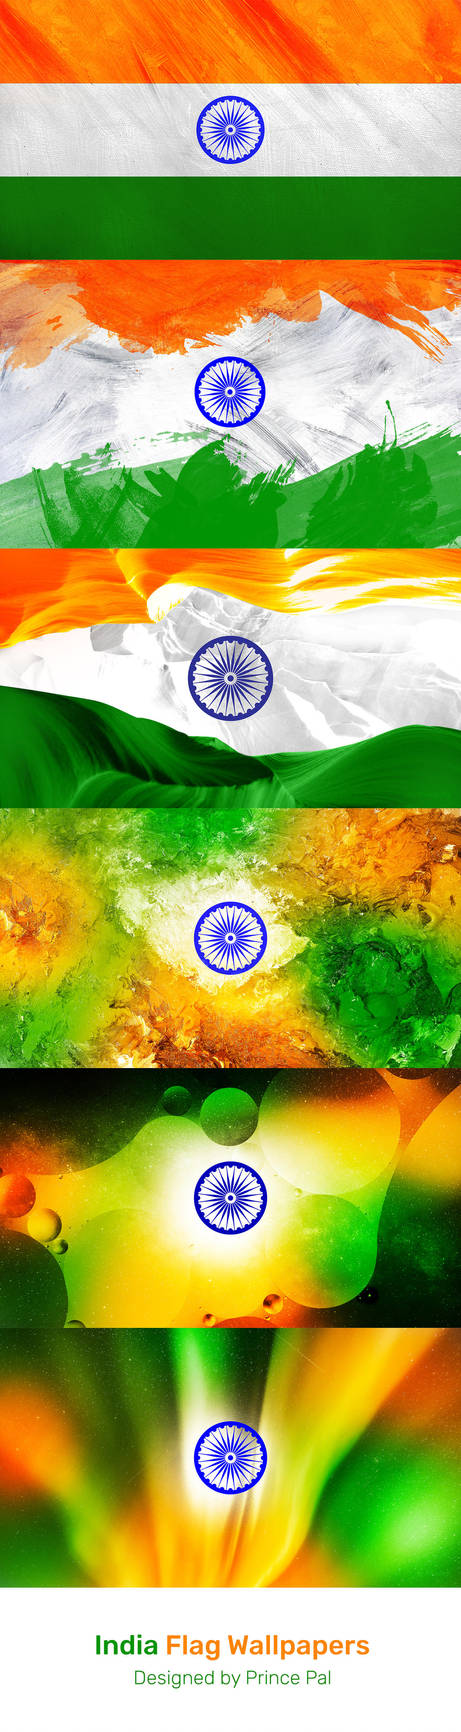 India Flag Wallpapers 2018 by princepal